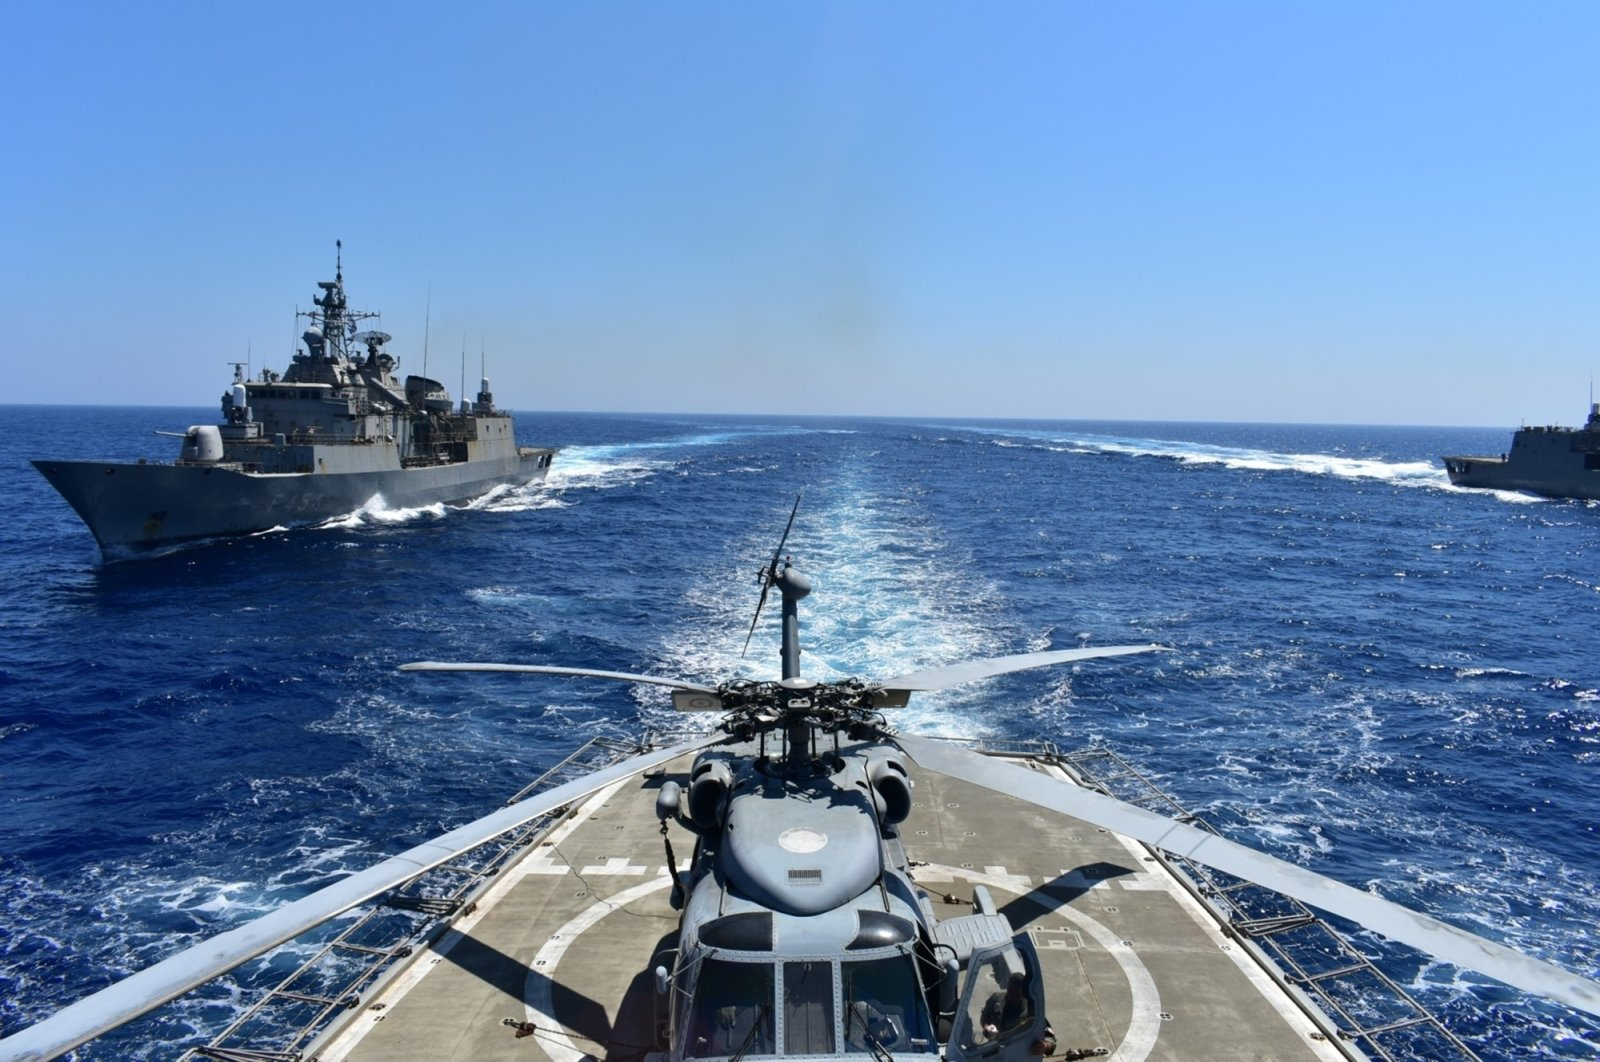 Warships take part in a military exercise in the Eastern Mediterranean sea, Aug. 25, 2020. (Greek Defense Ministry via AP)